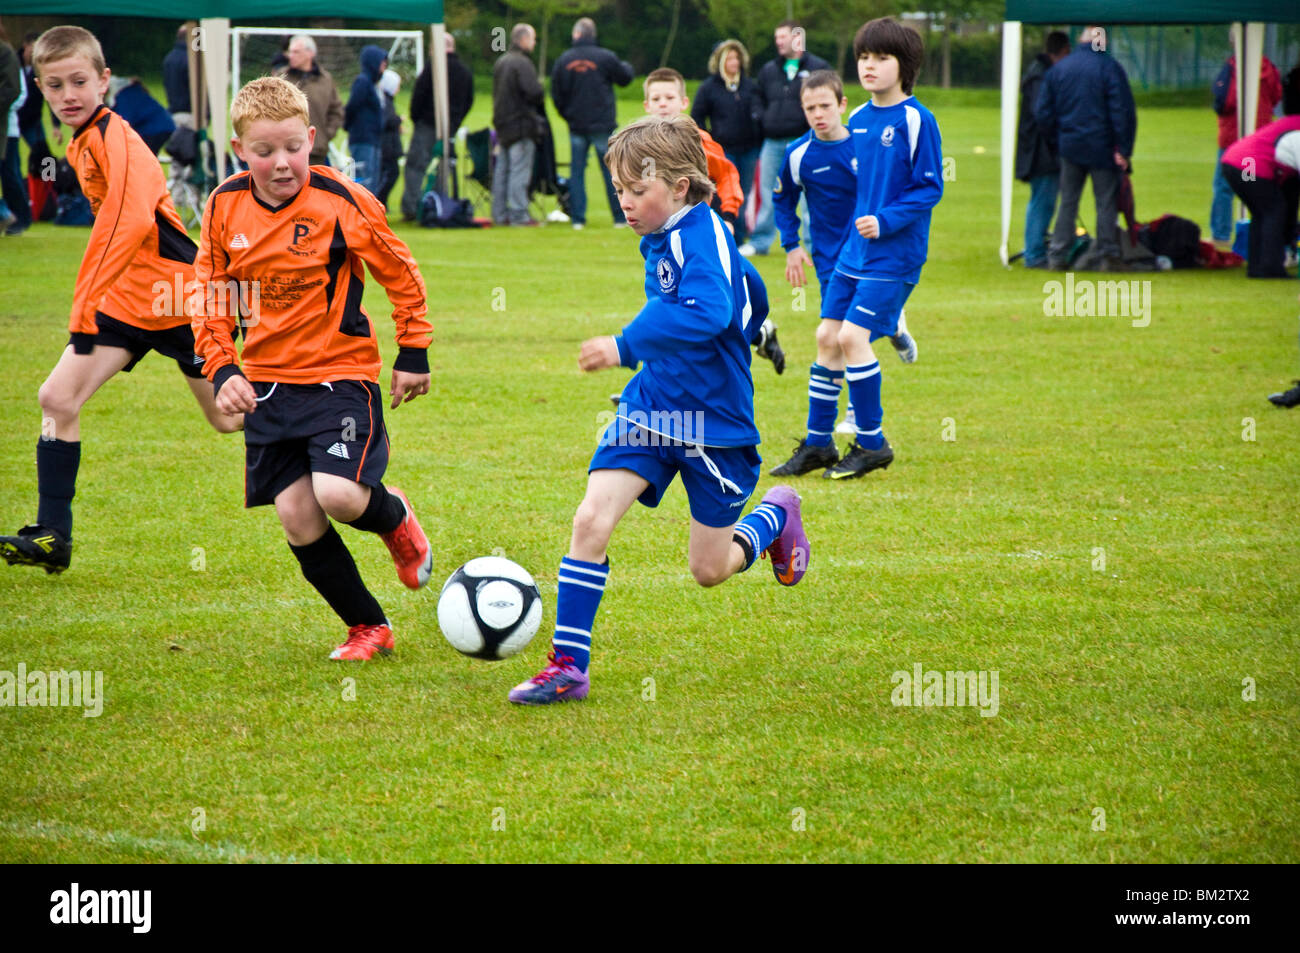 Under 10s Football Tournament Larkhall in blue and Purnels in orange Benny Wayman on the ball - Stock Image